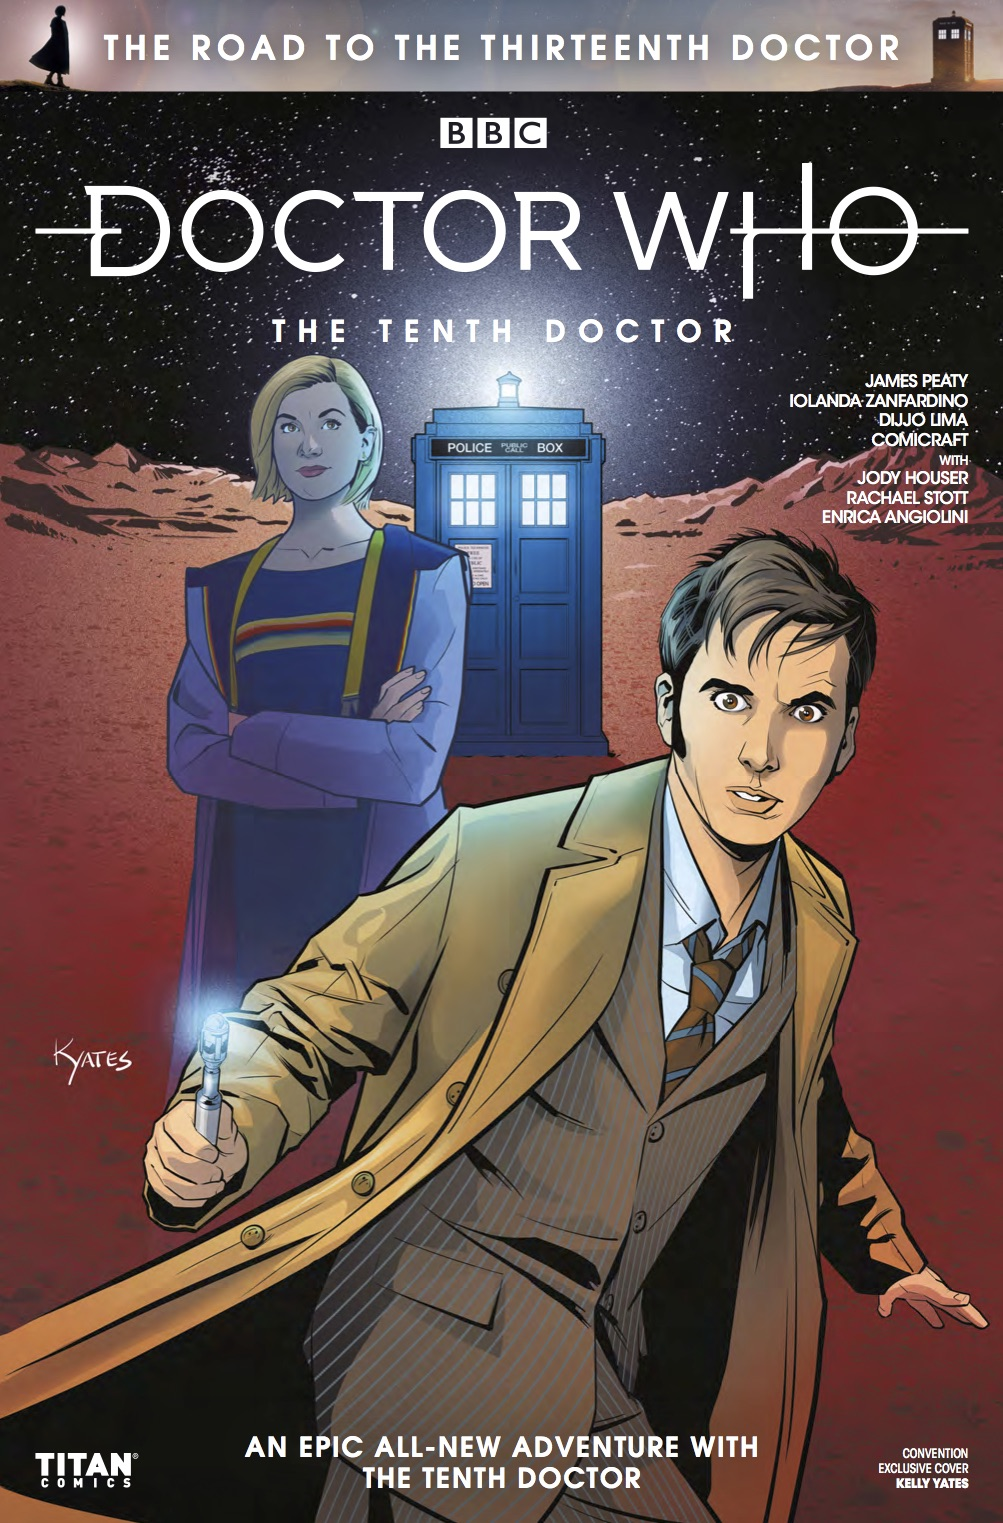 doctor_who_road_to_thirteenth_1_cover sdcc.jpg